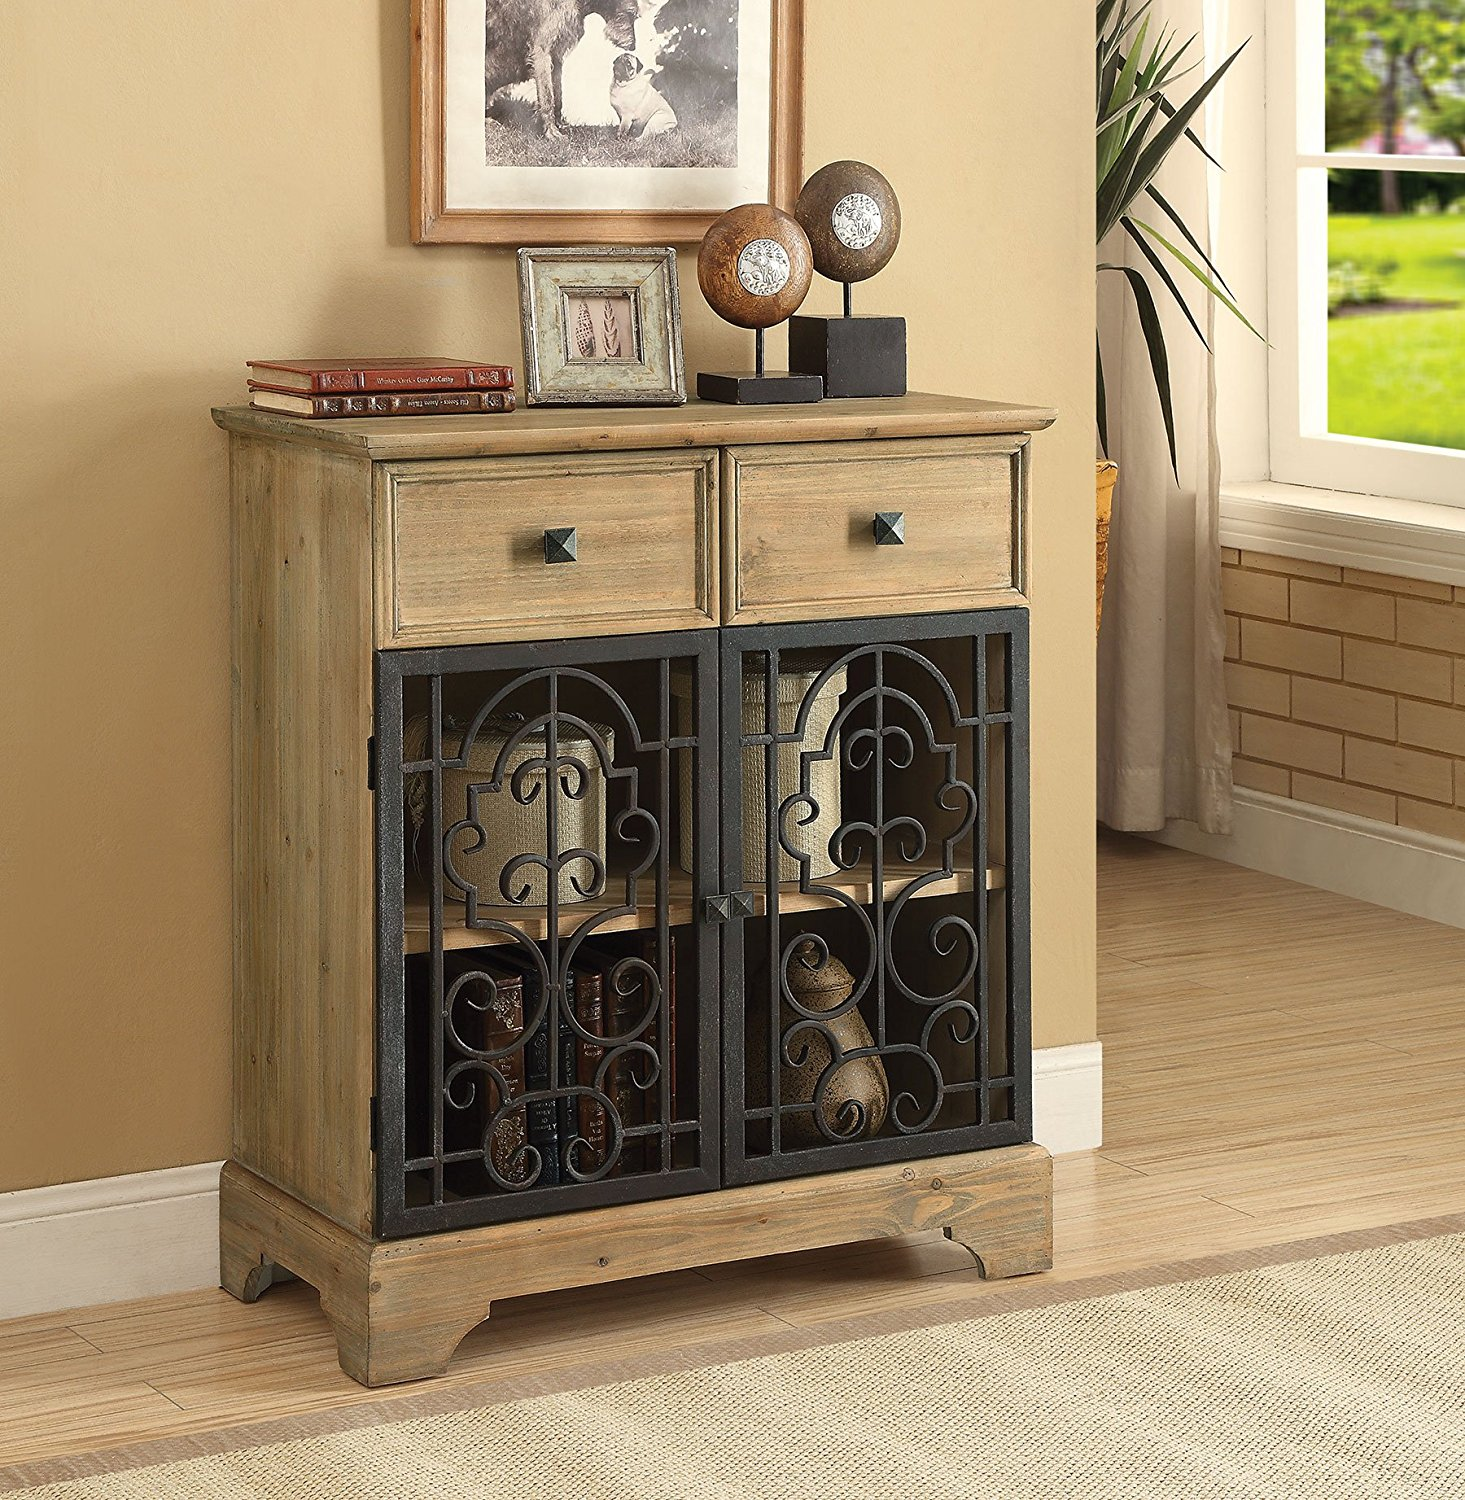 Cheap Wood Cabinet Doors Find Wood Cabinet Doors Deals On Line At